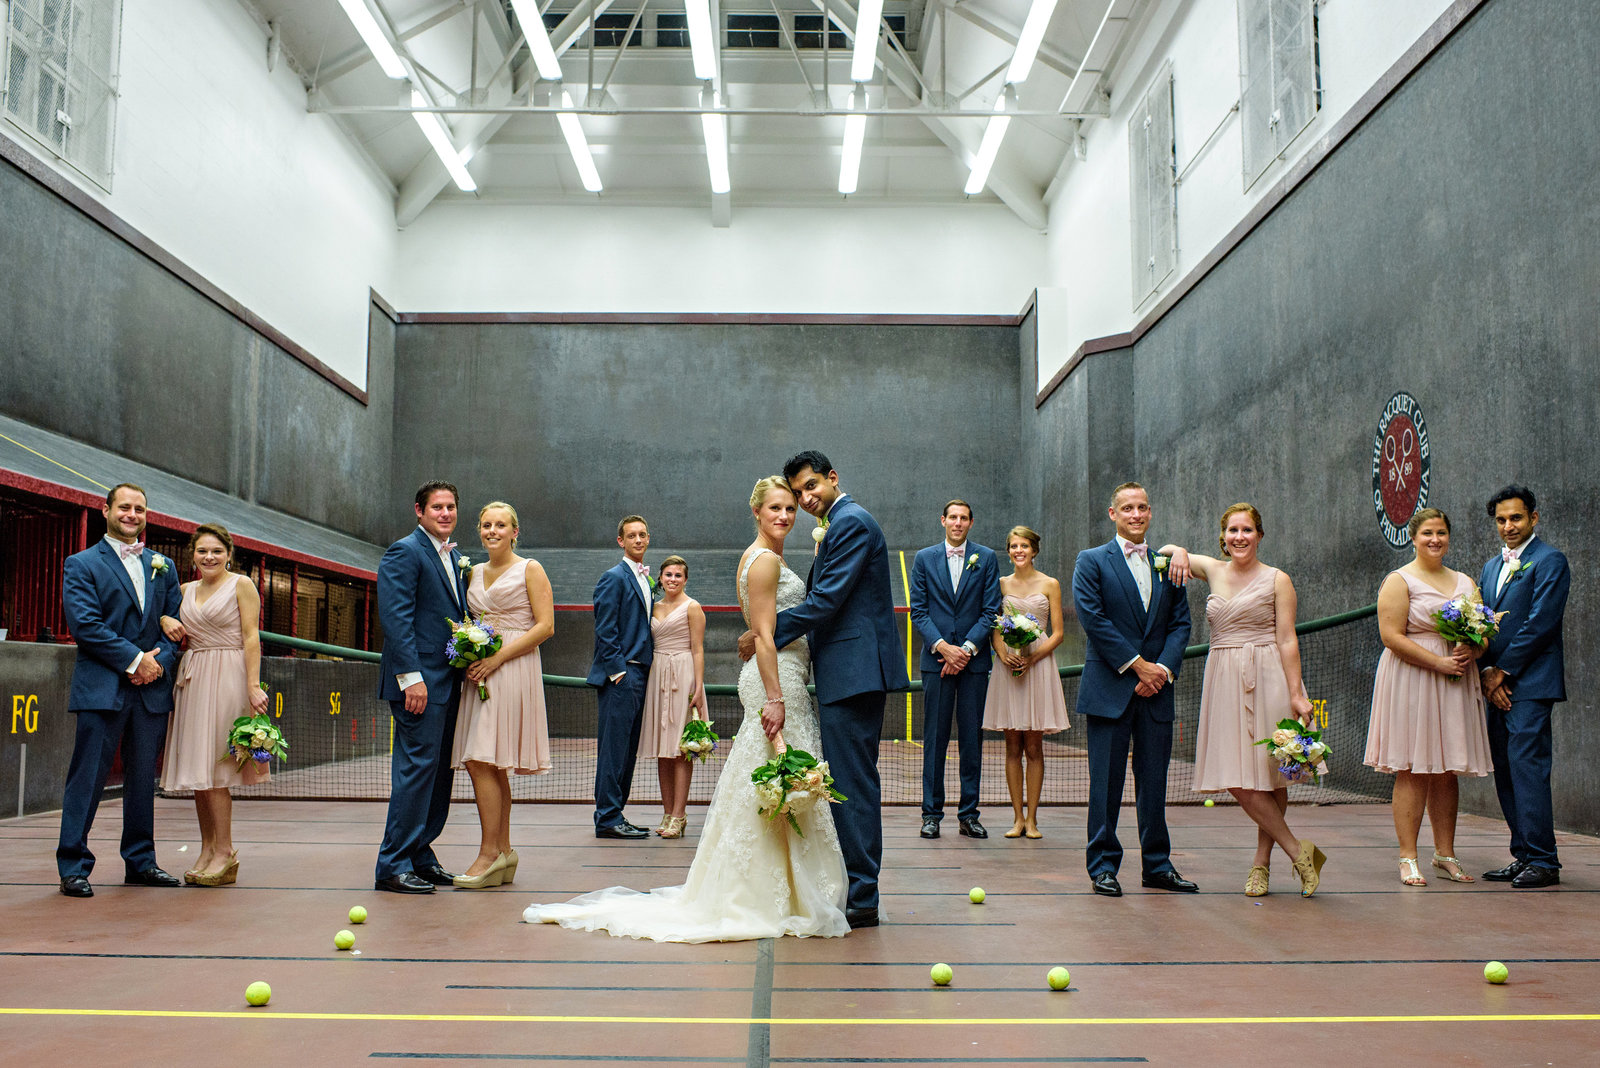 A bridal party pose on a tennis court at the Racquet Club of Philadelphia.